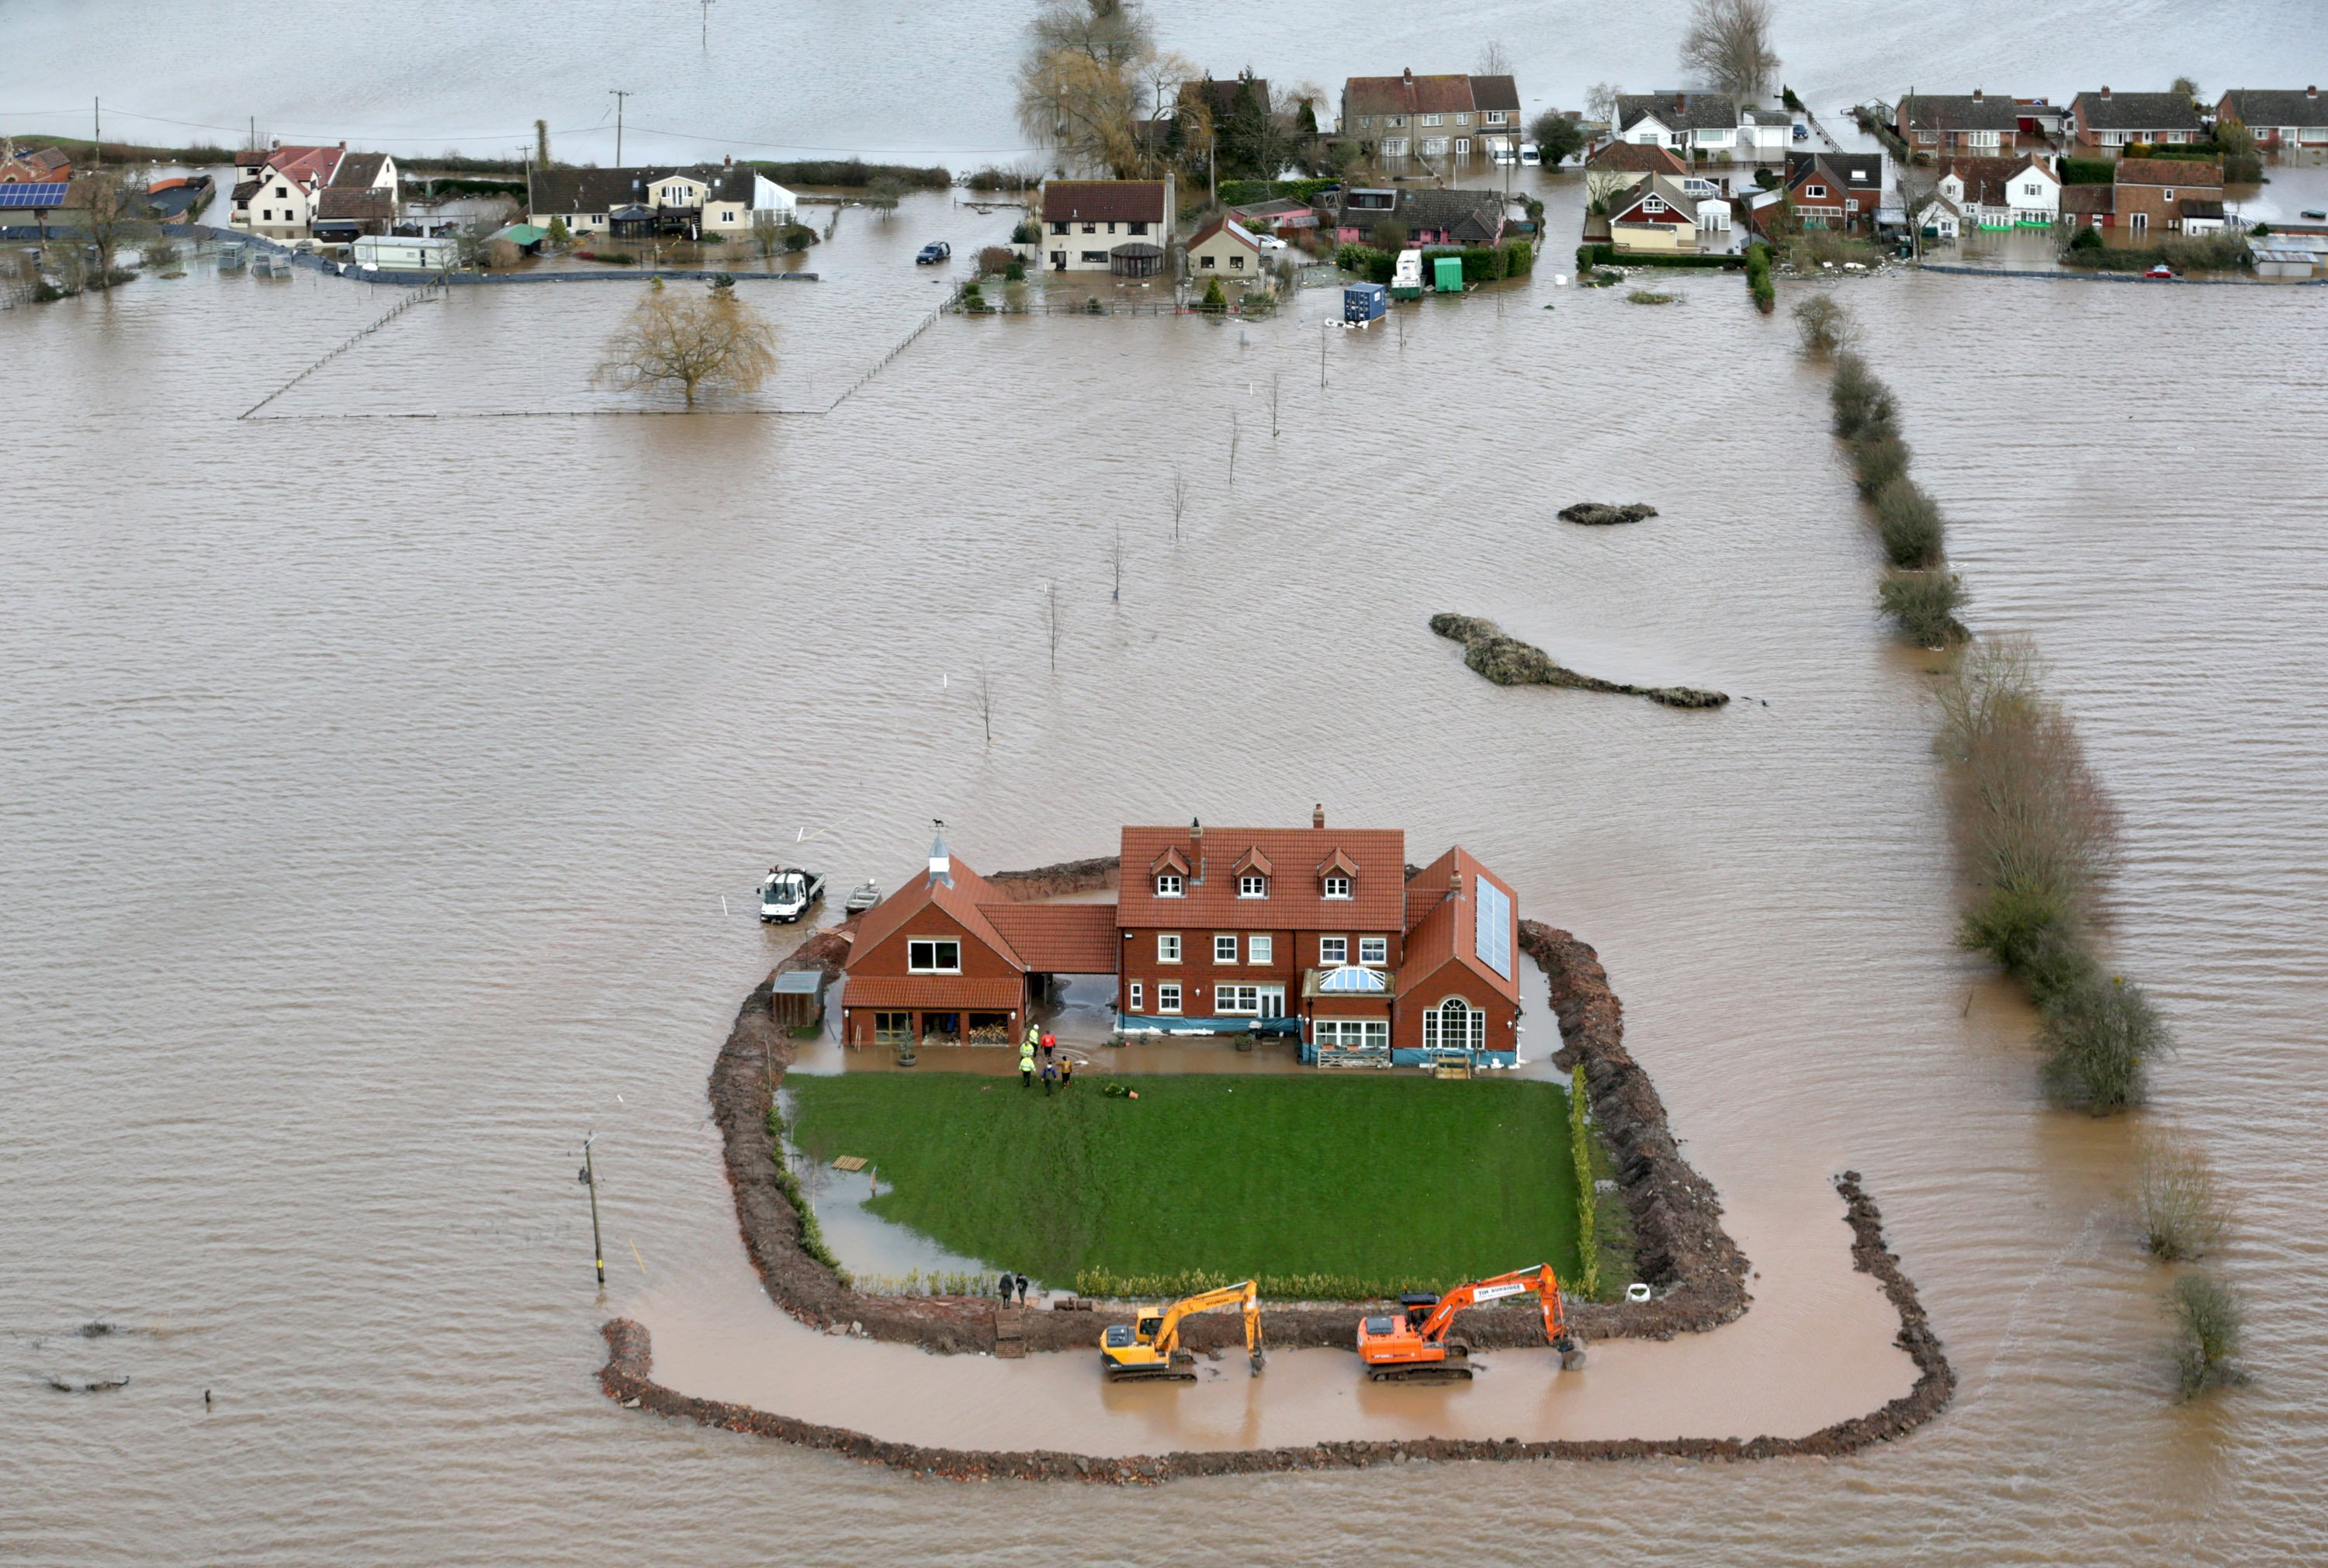 Worker's continue to build flood defences around Moorland resident Sam Notaro's house in the flooded village of Moorland near Bridgwater on the Somerset Levels on Feb. 10, 2014 in Somerset, England. Thousands of acres of the Somerset Levels have been under water for weeks, yet flood levels are still rising and worryingly, more rain is forecast for later this week.